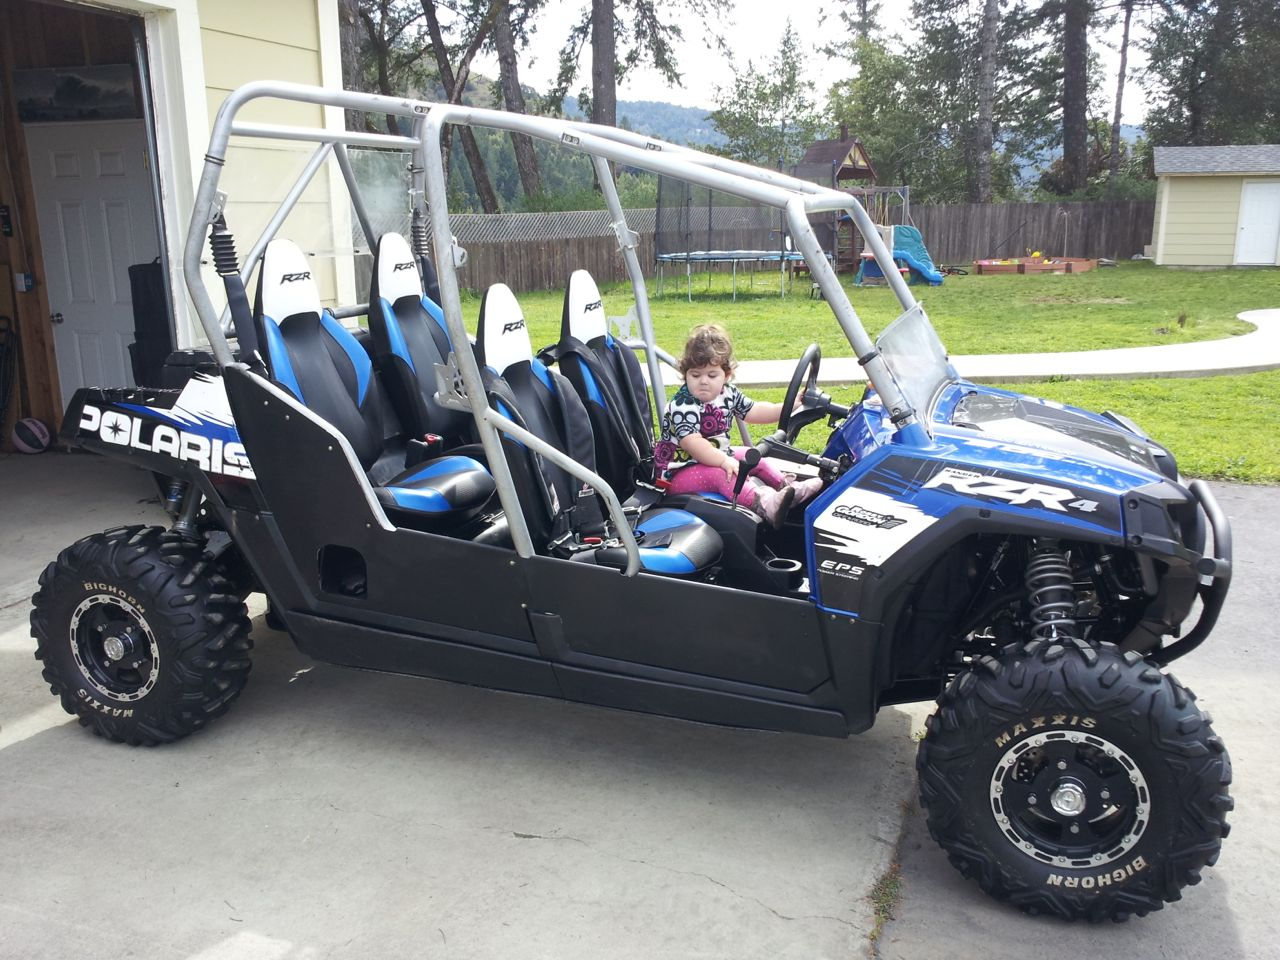 2011 rzr 4 800 robbie gordon 17k nor cal polaris rzr. Black Bedroom Furniture Sets. Home Design Ideas